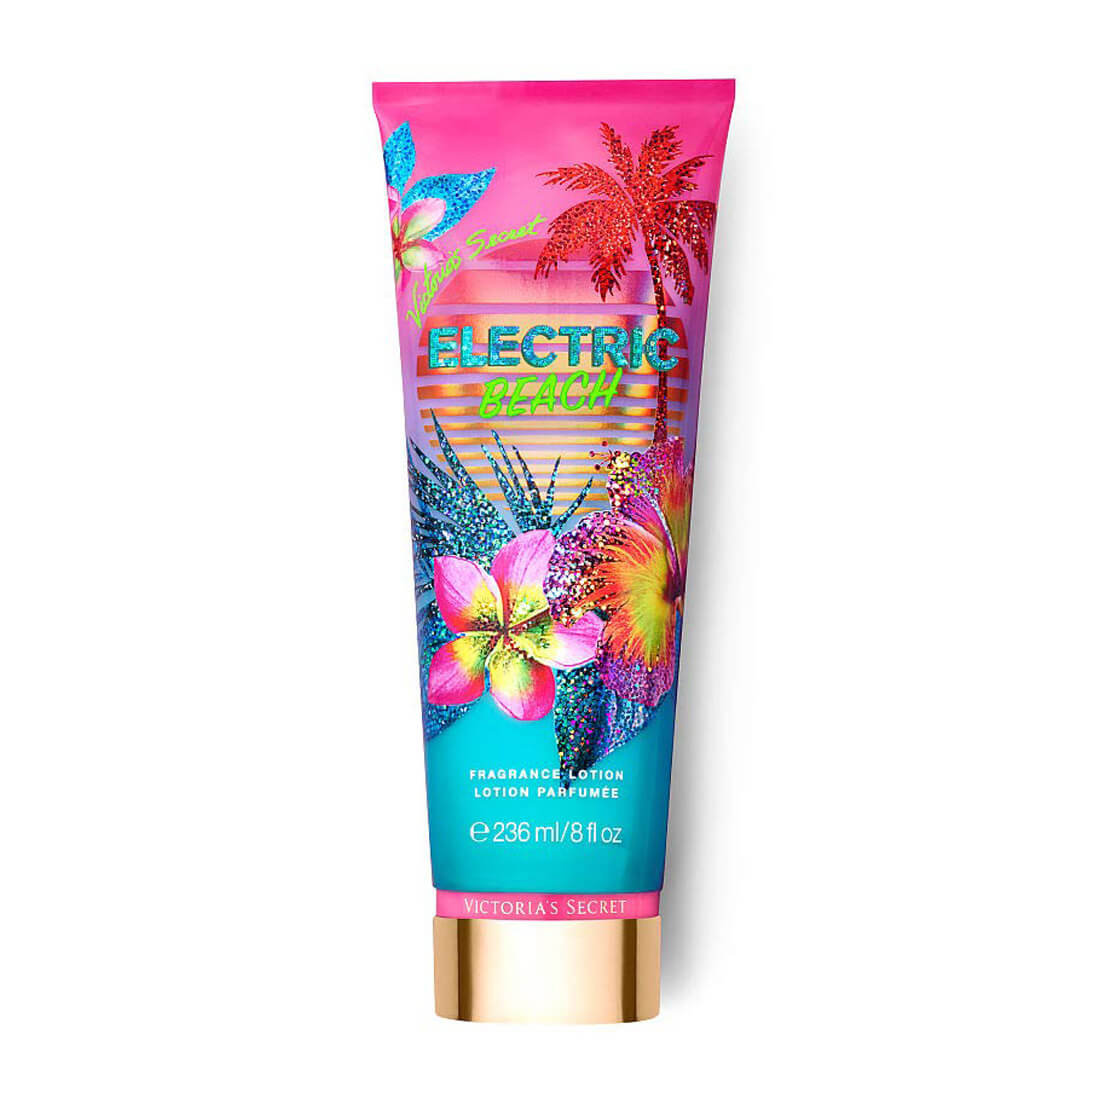 Victoria's Secret Electric Beach Fragrance Lotion 236ml